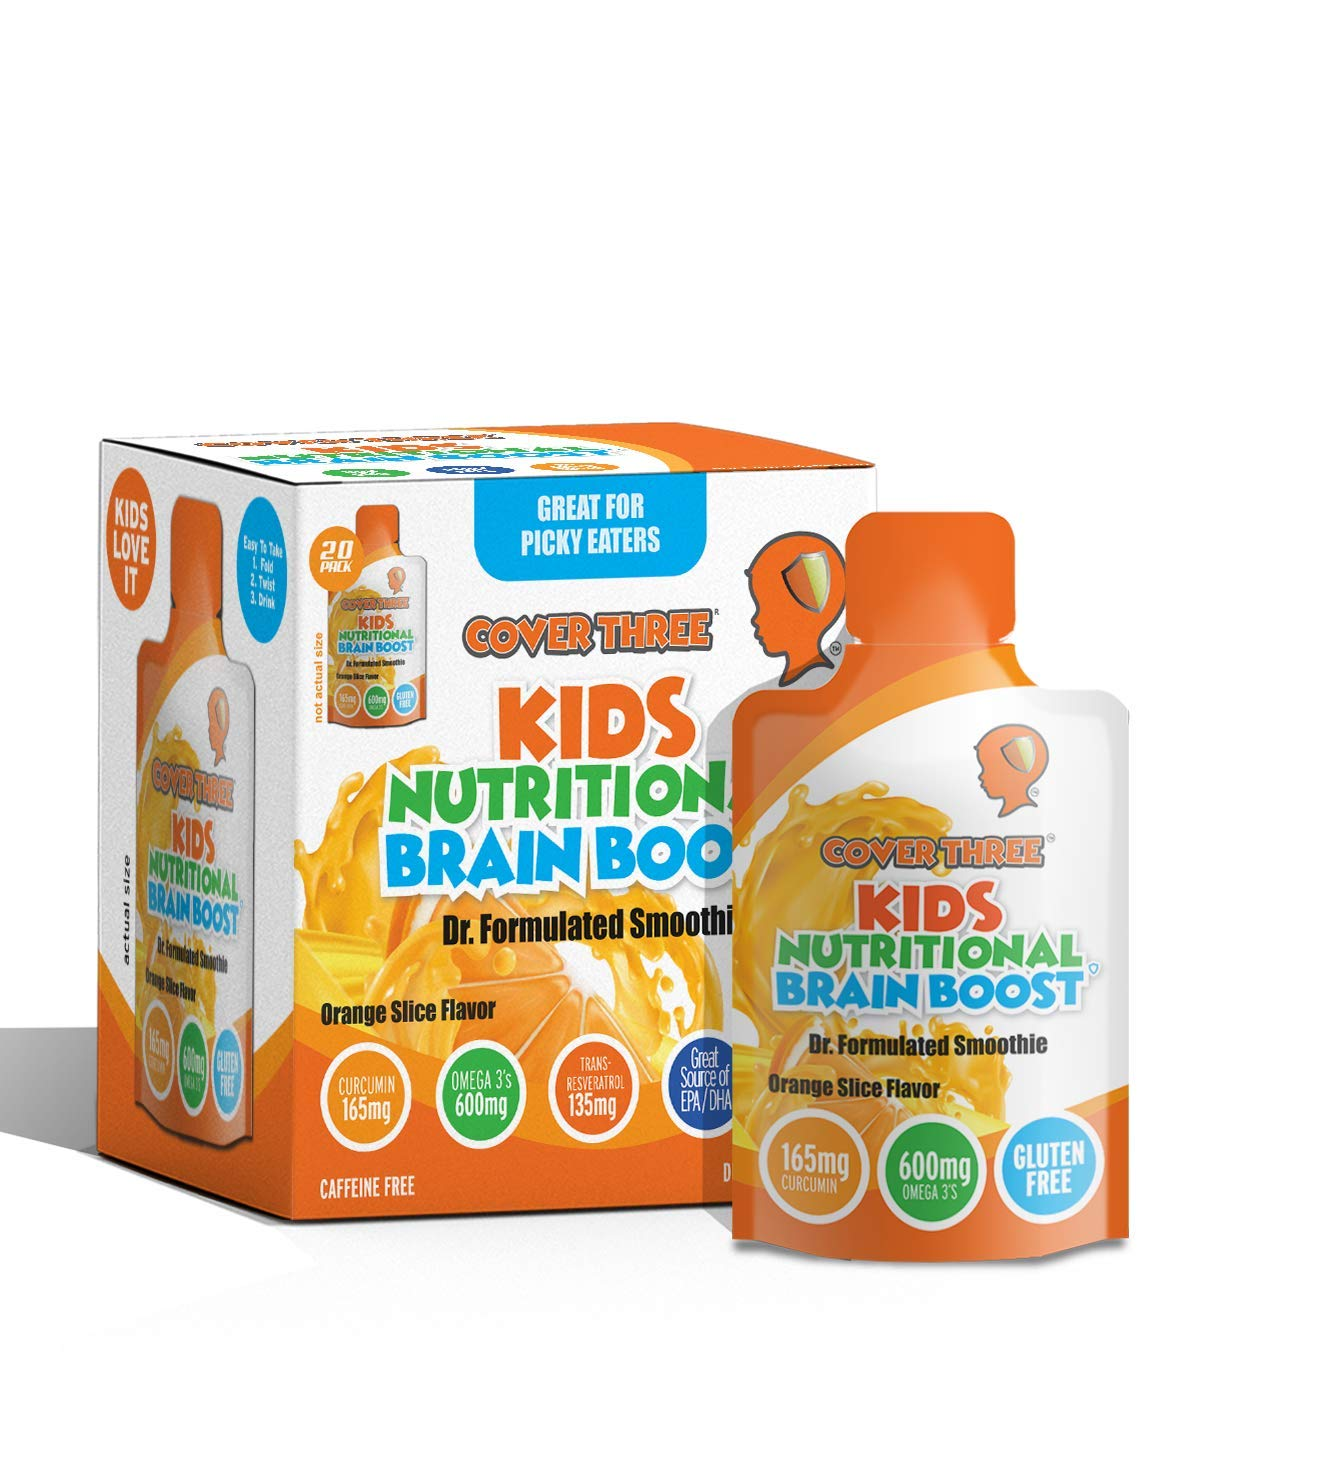 Kids Nutritional Brain Supplement with Immune Boosters – Healthy Brain Function, Vision Heart Health – Omega Fish Oil DHA EPA, VIT C, Turmeric – Boost Child Memory Focus – Liquid Squeeze Pouch